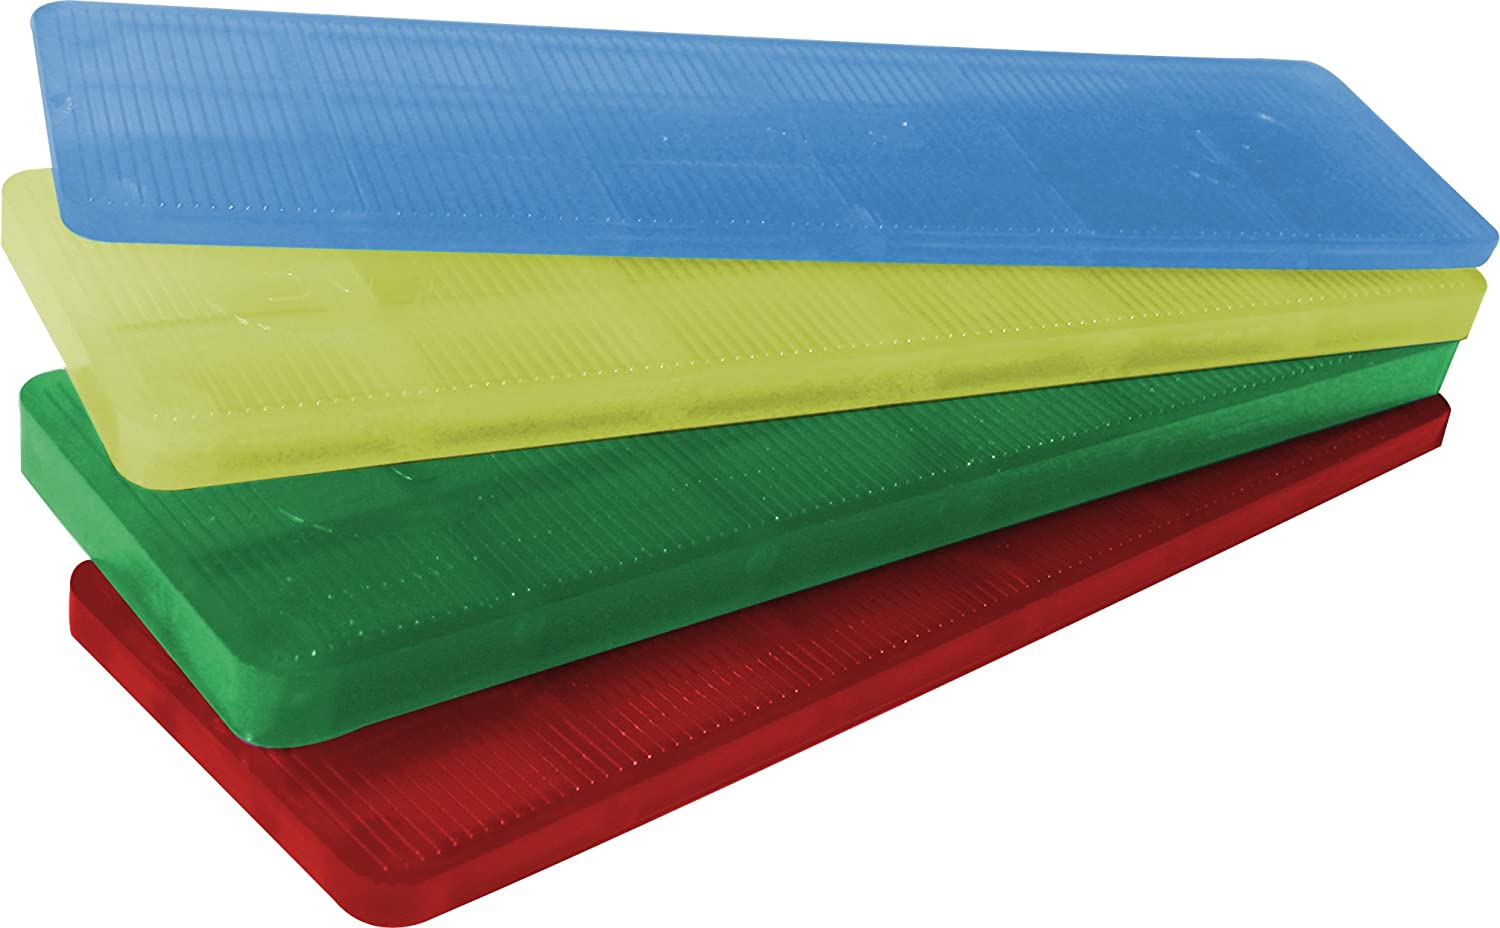 Glazing packers 100 x 32 x 6 pack of 1000